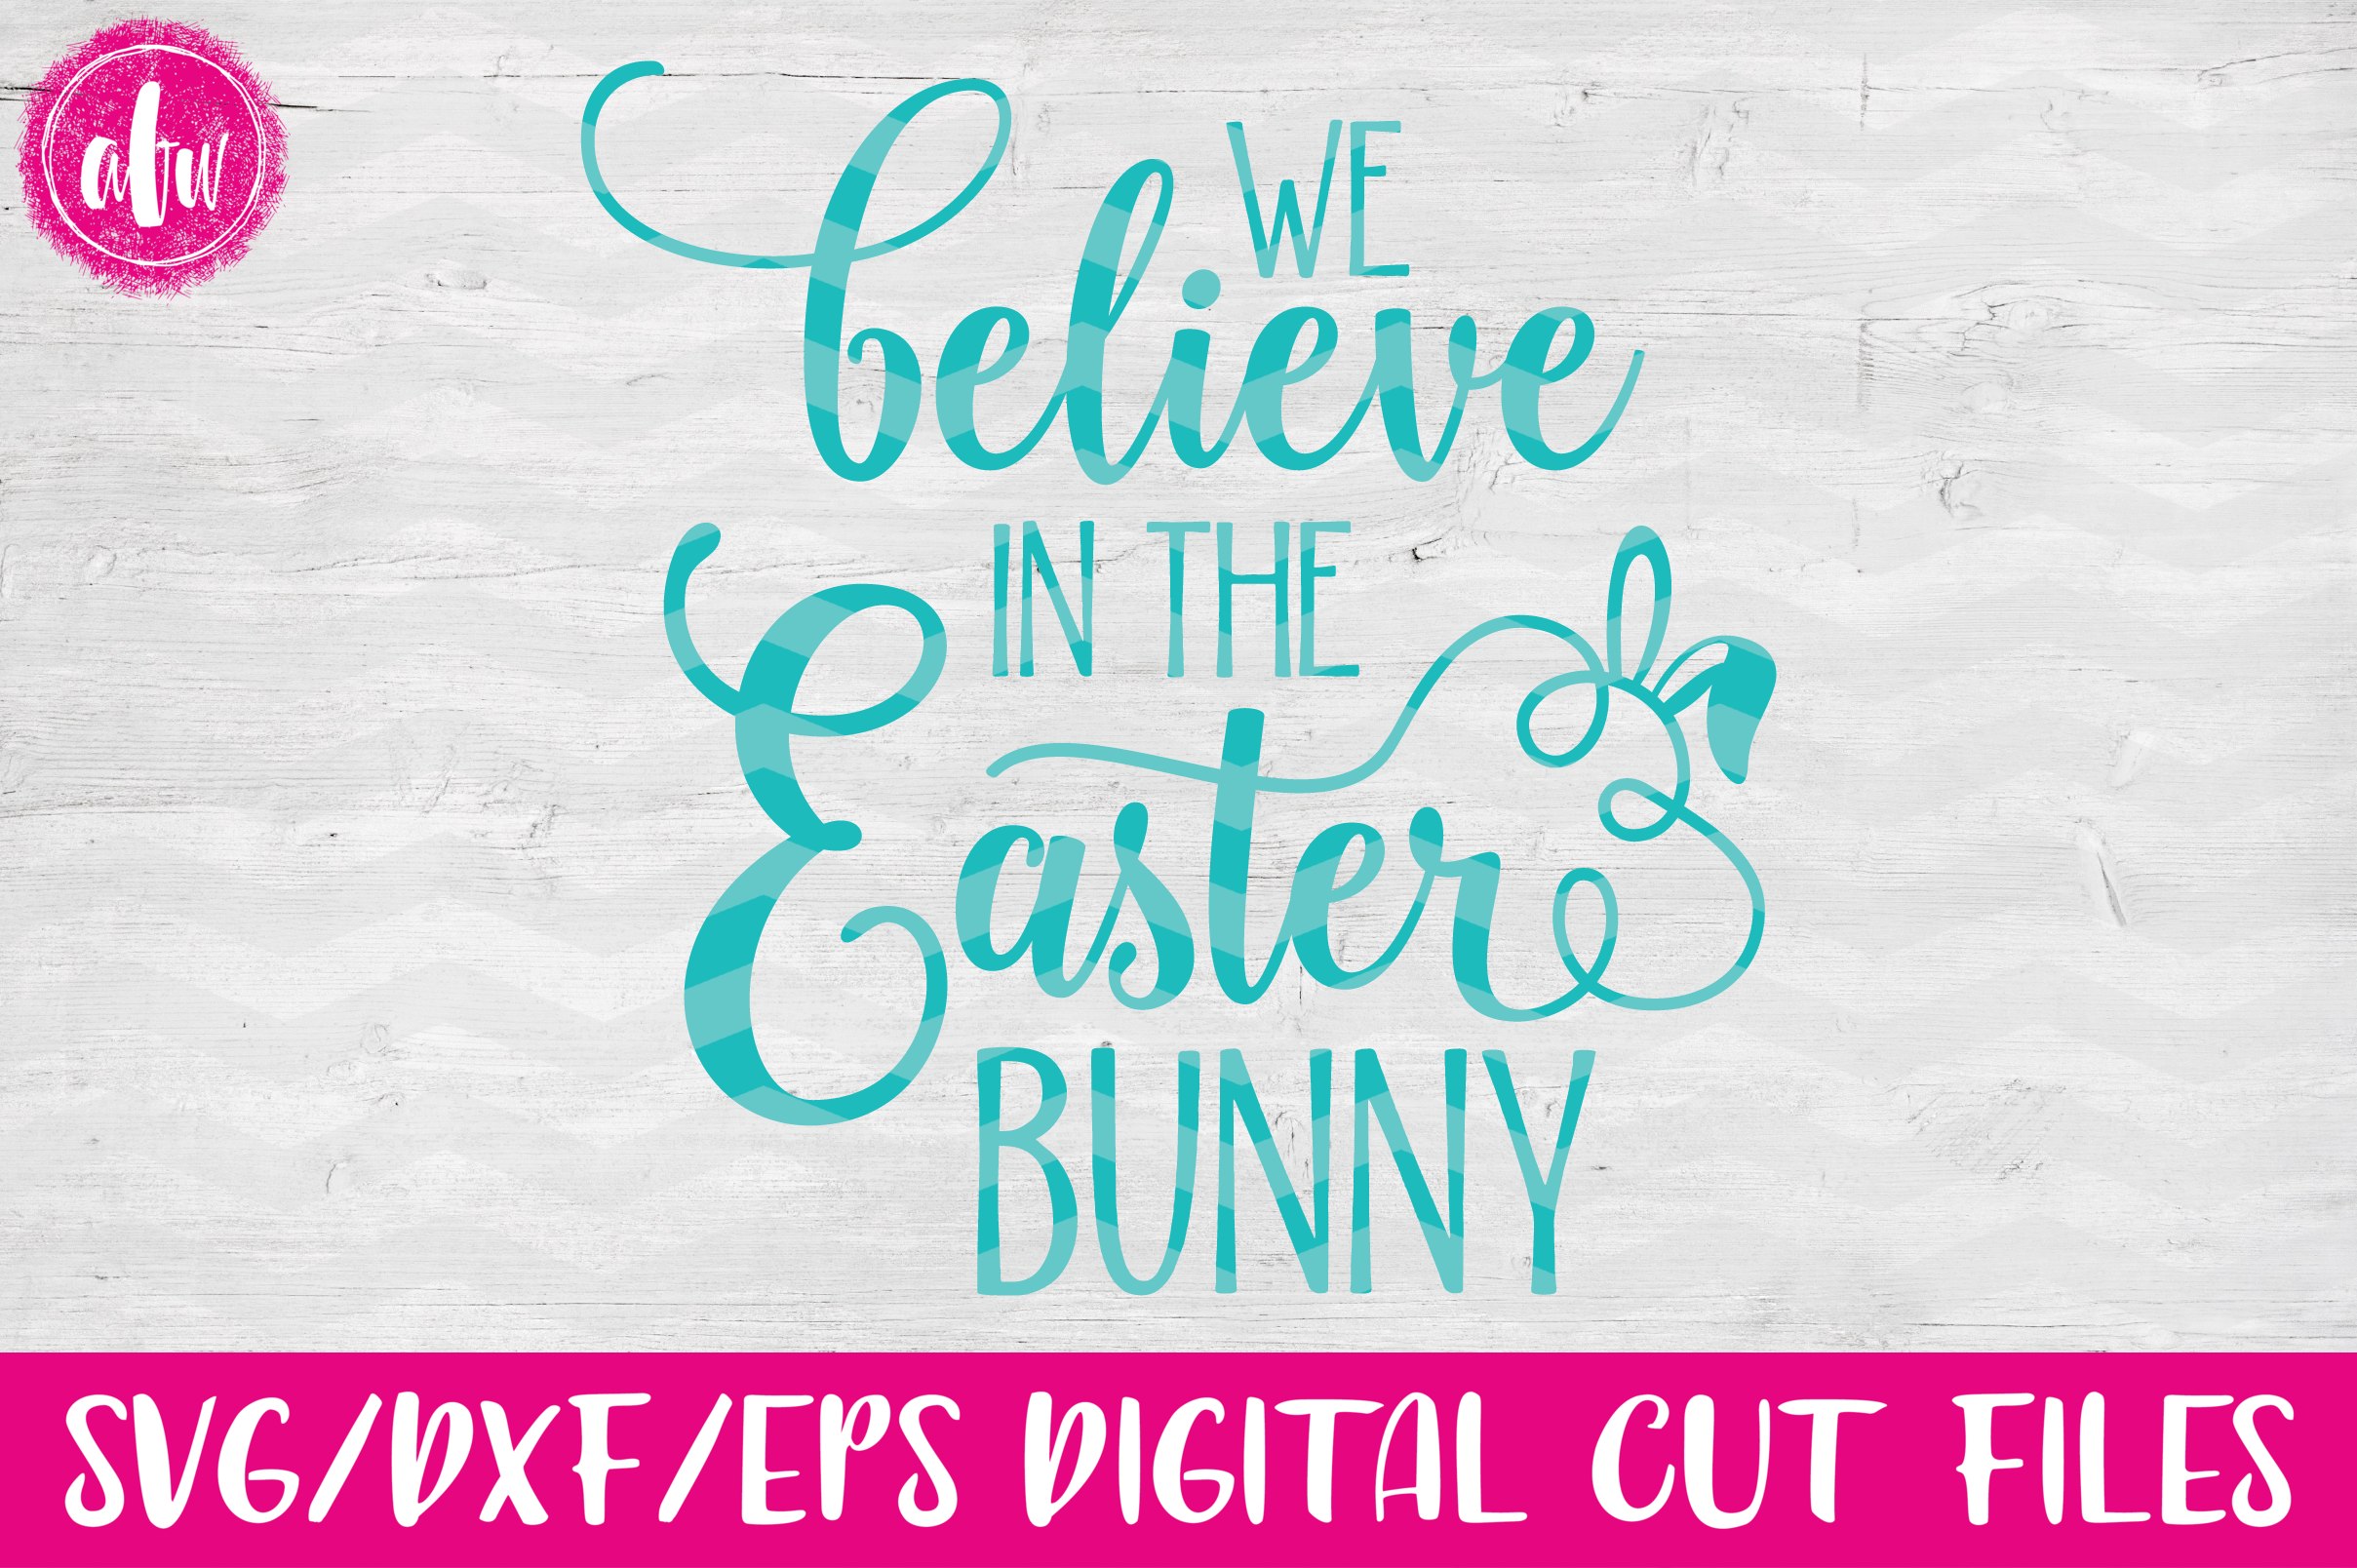 We Believe in the Easter Bunny - SVG, DXF, EPS Cut Files example image 1